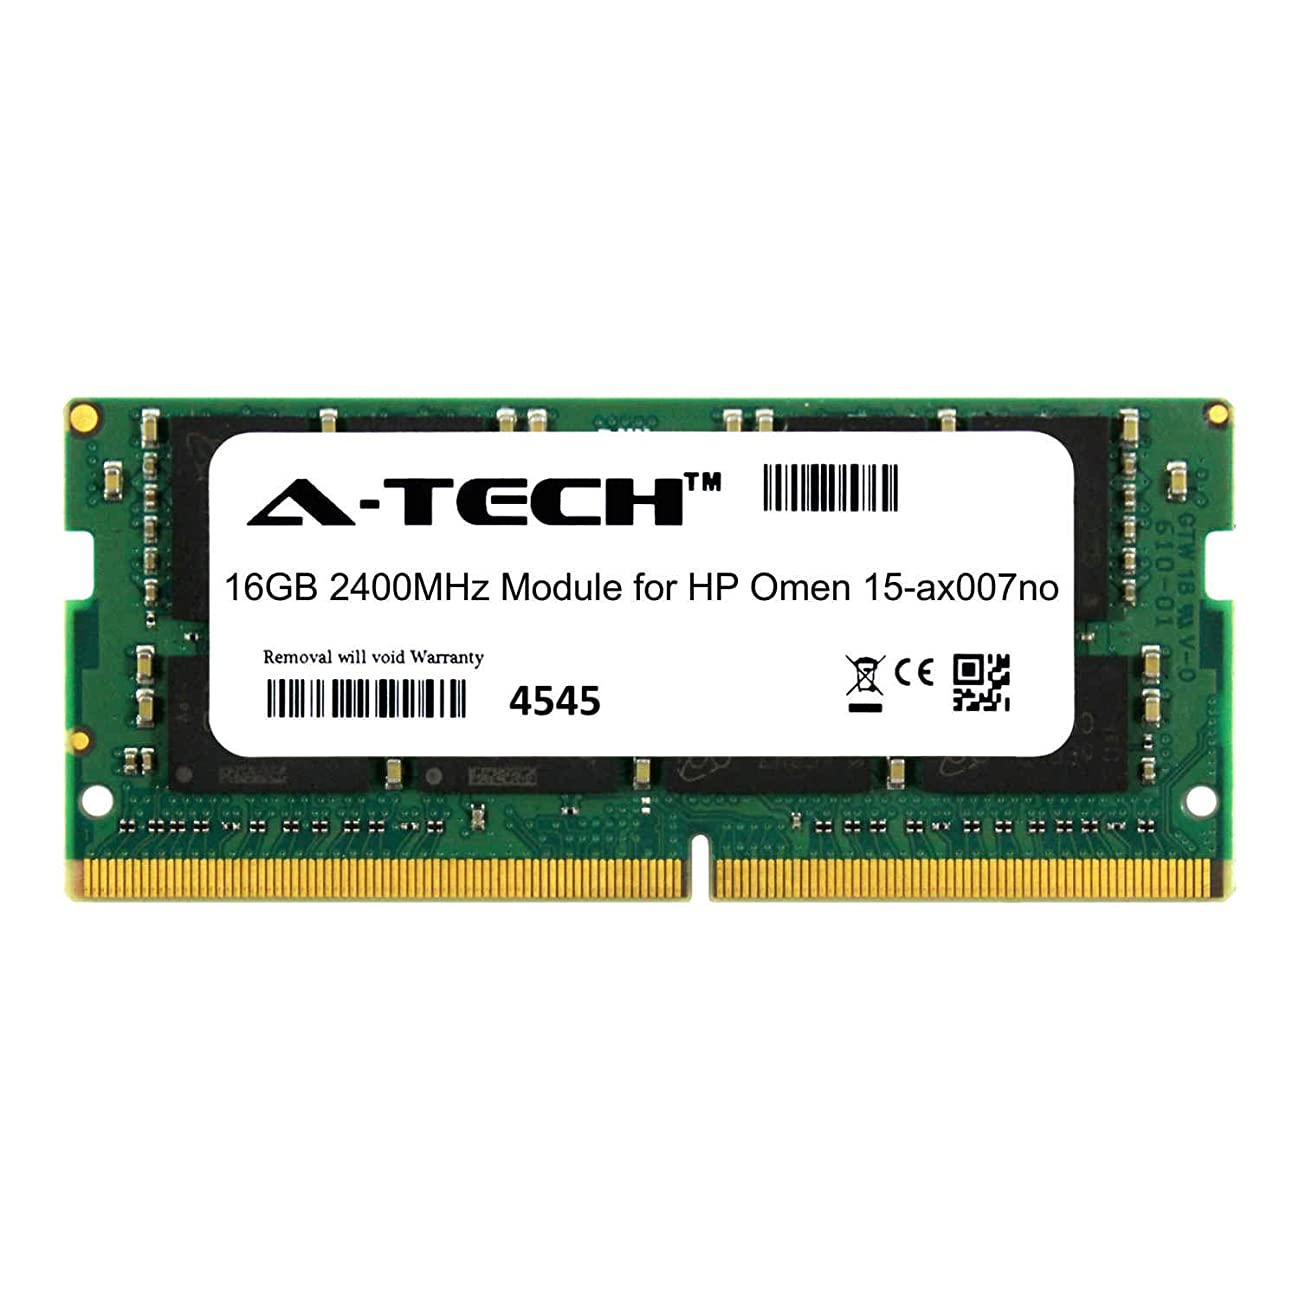 A-Tech 16GB Module for HP Omen 15-ax007no Laptop & Notebook Compatible DDR4 2400Mhz Memory Ram (ATMS279732A25831X1)